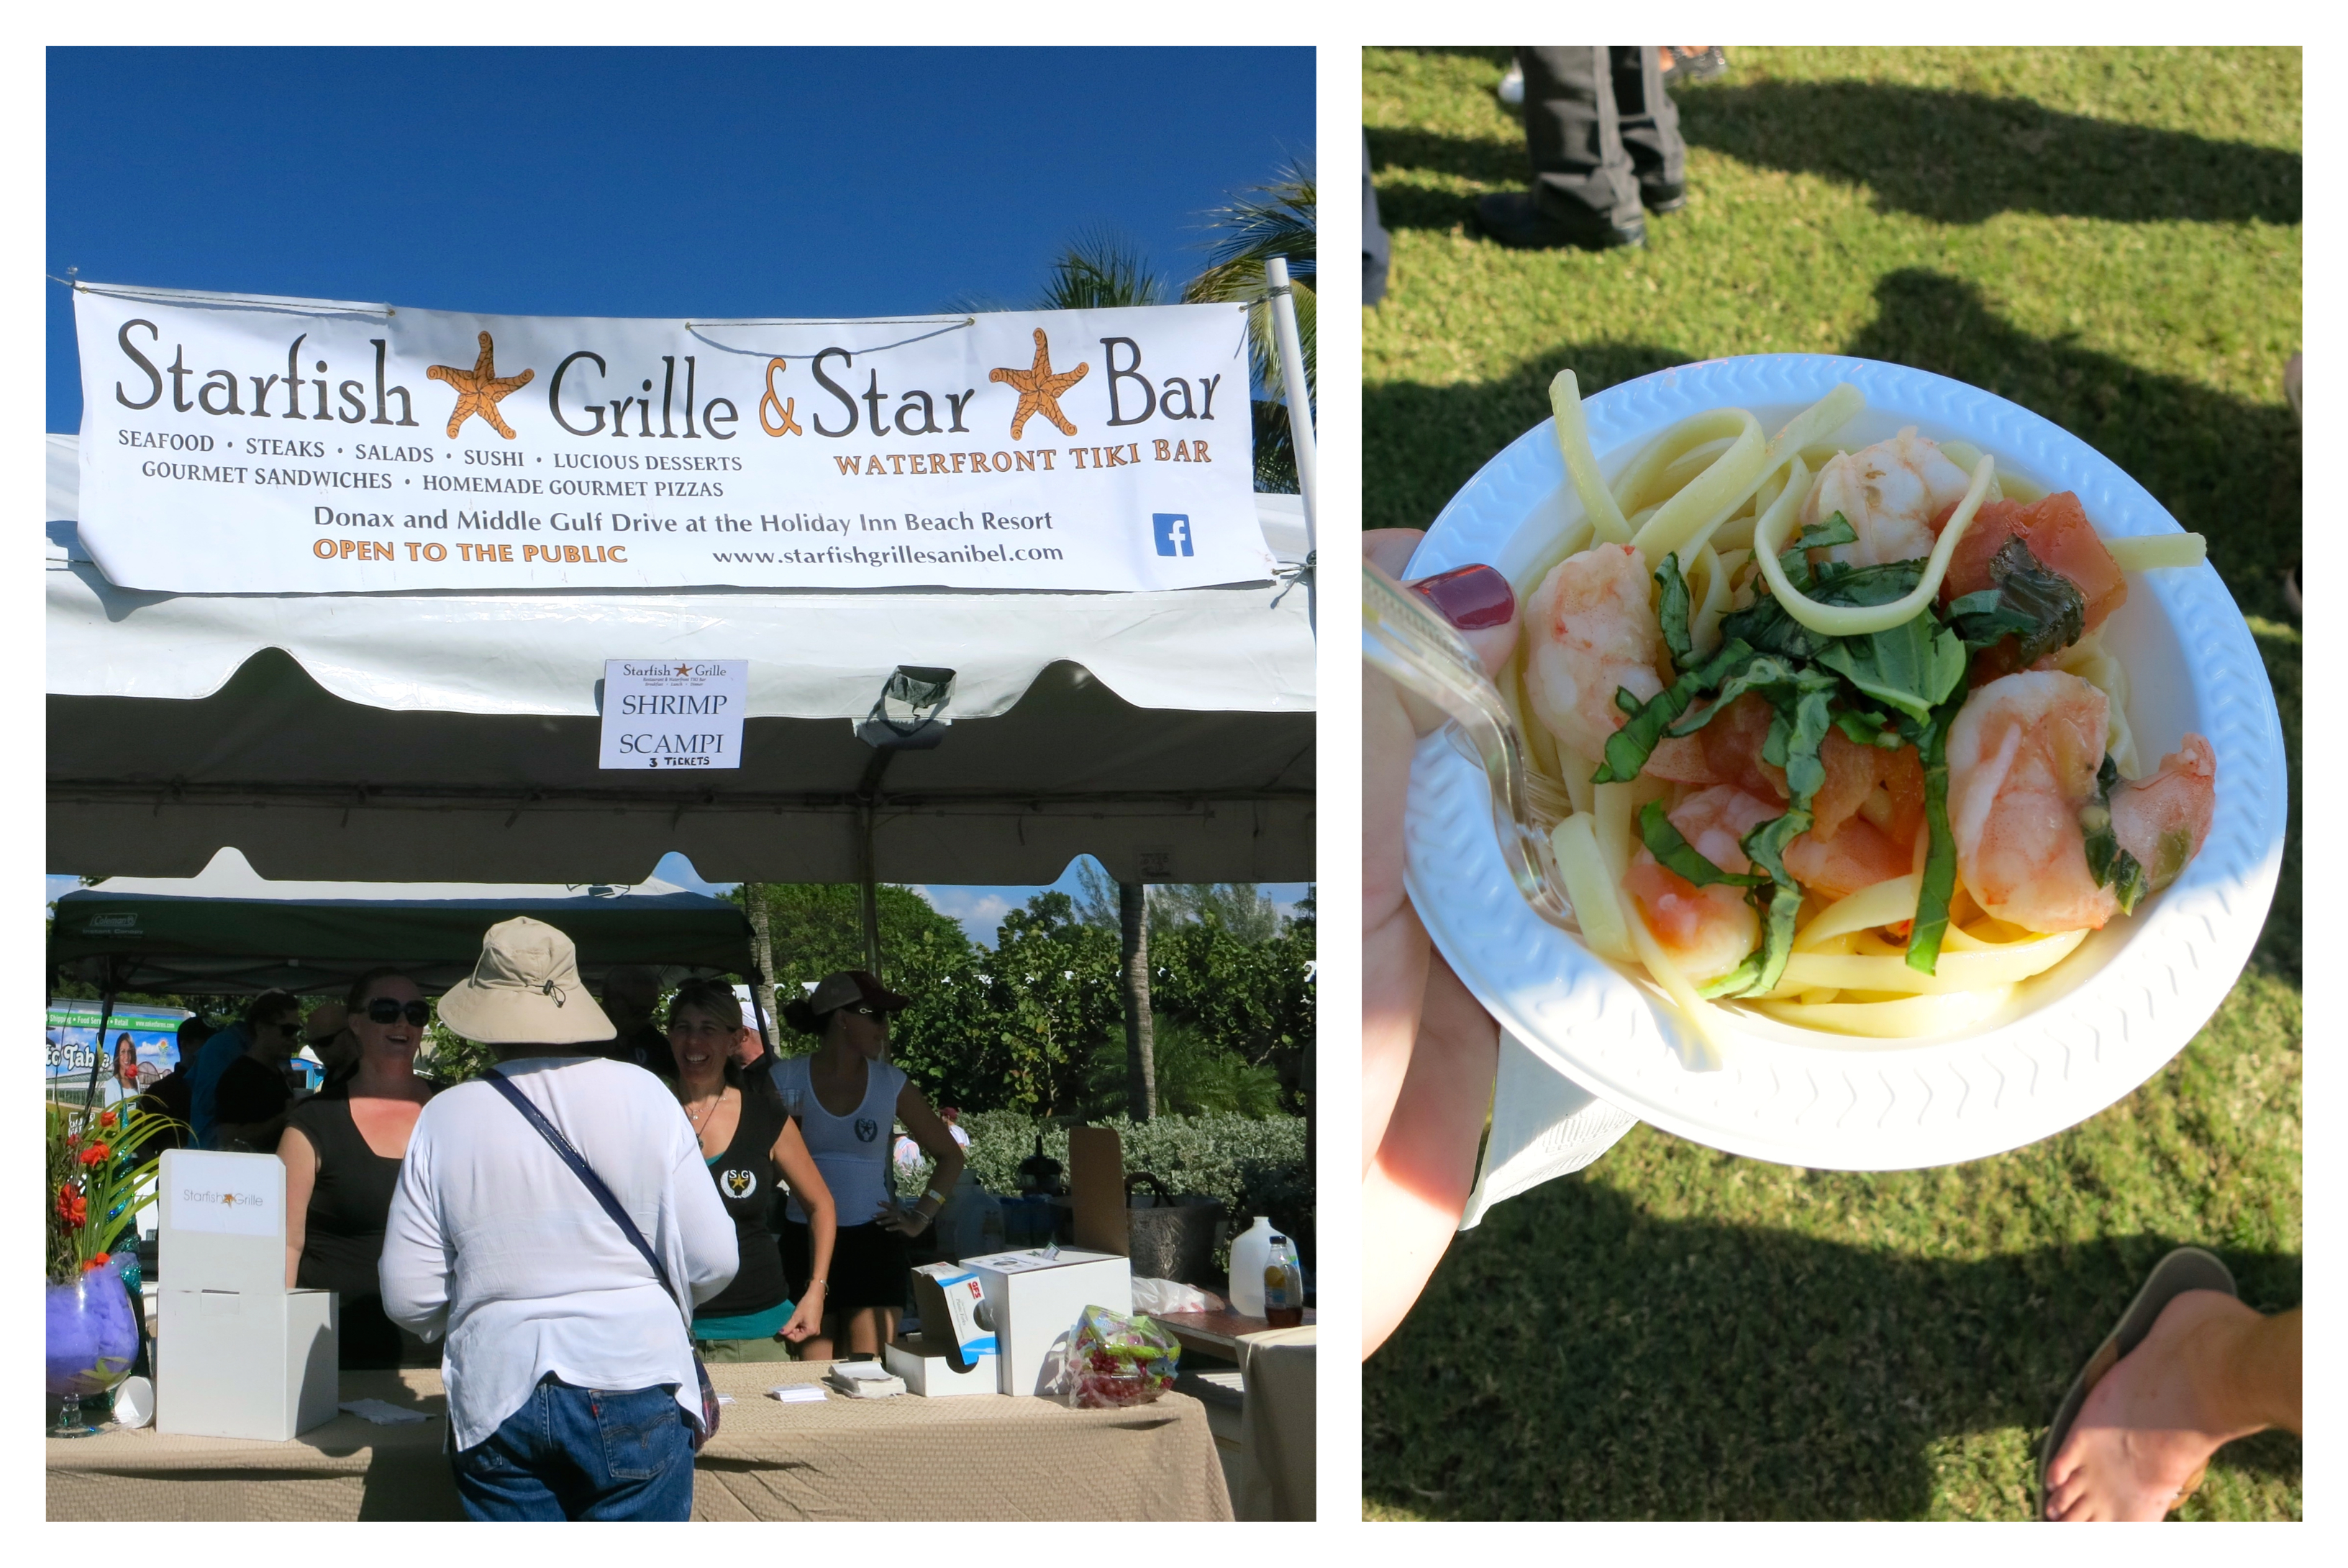 Taste of the Islands-Starfish Grille